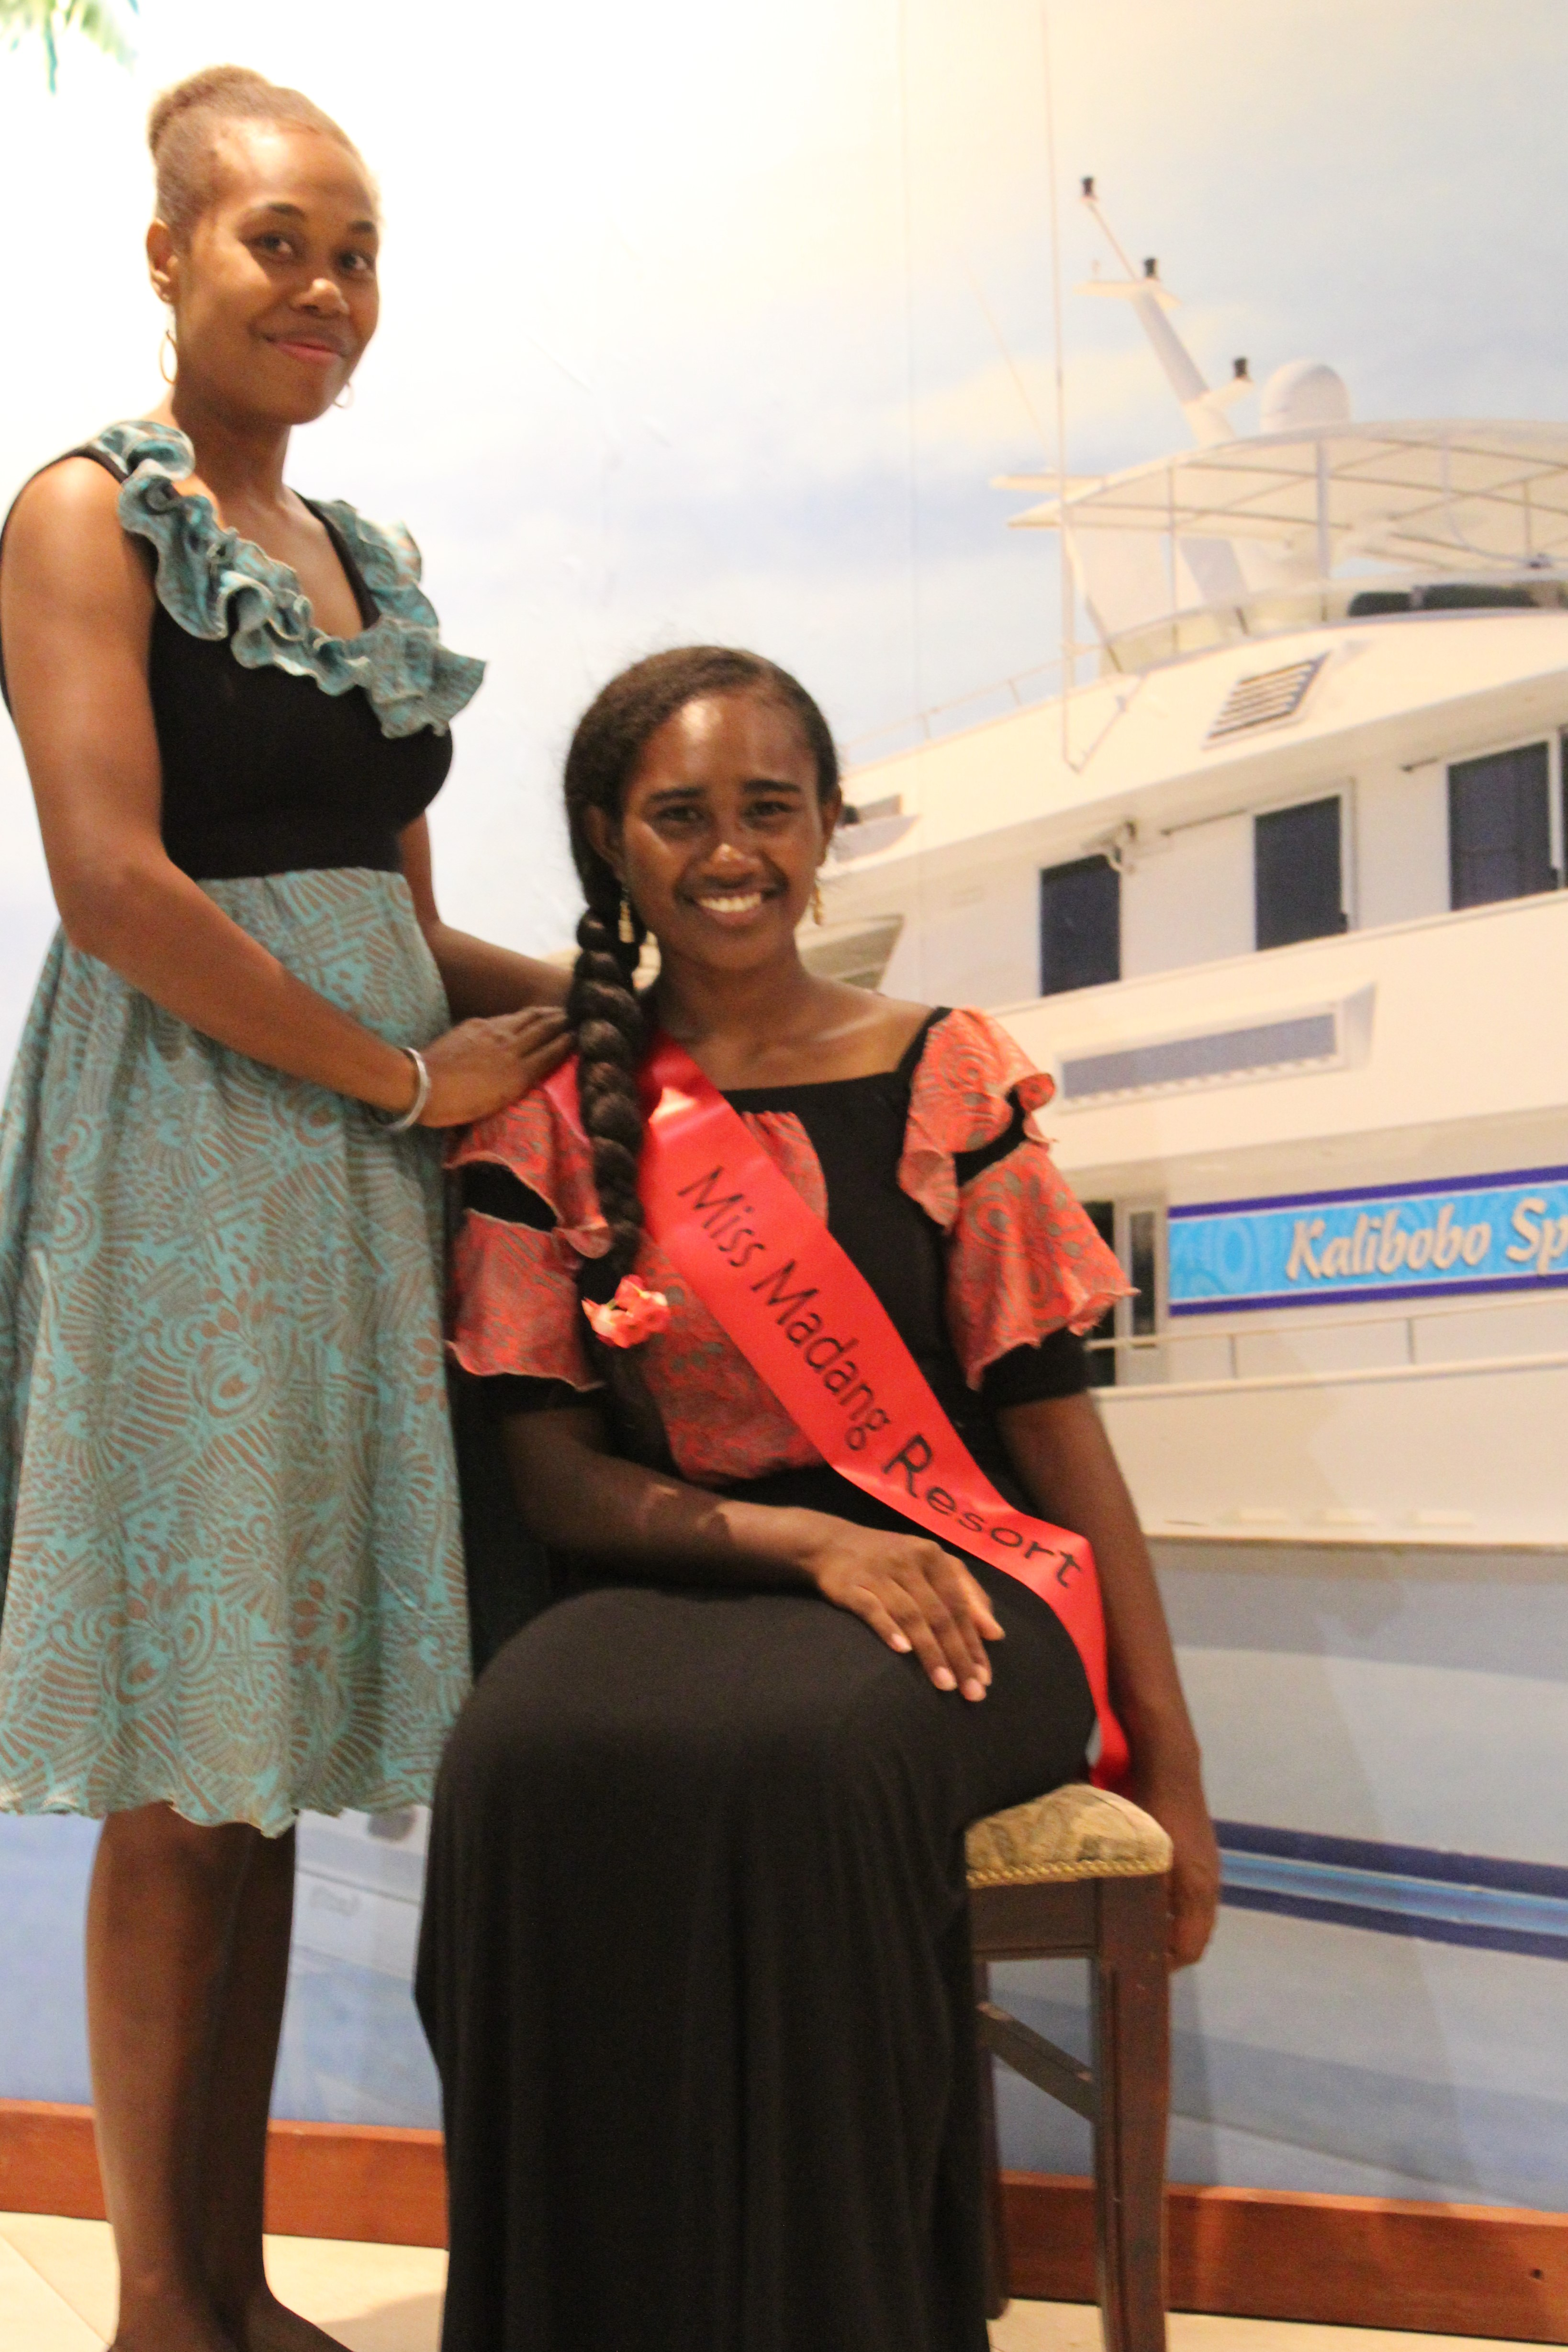 MISS MADANG RESORT HOTEL ENTERS MISS PACIFIC PNG PAGEANT.